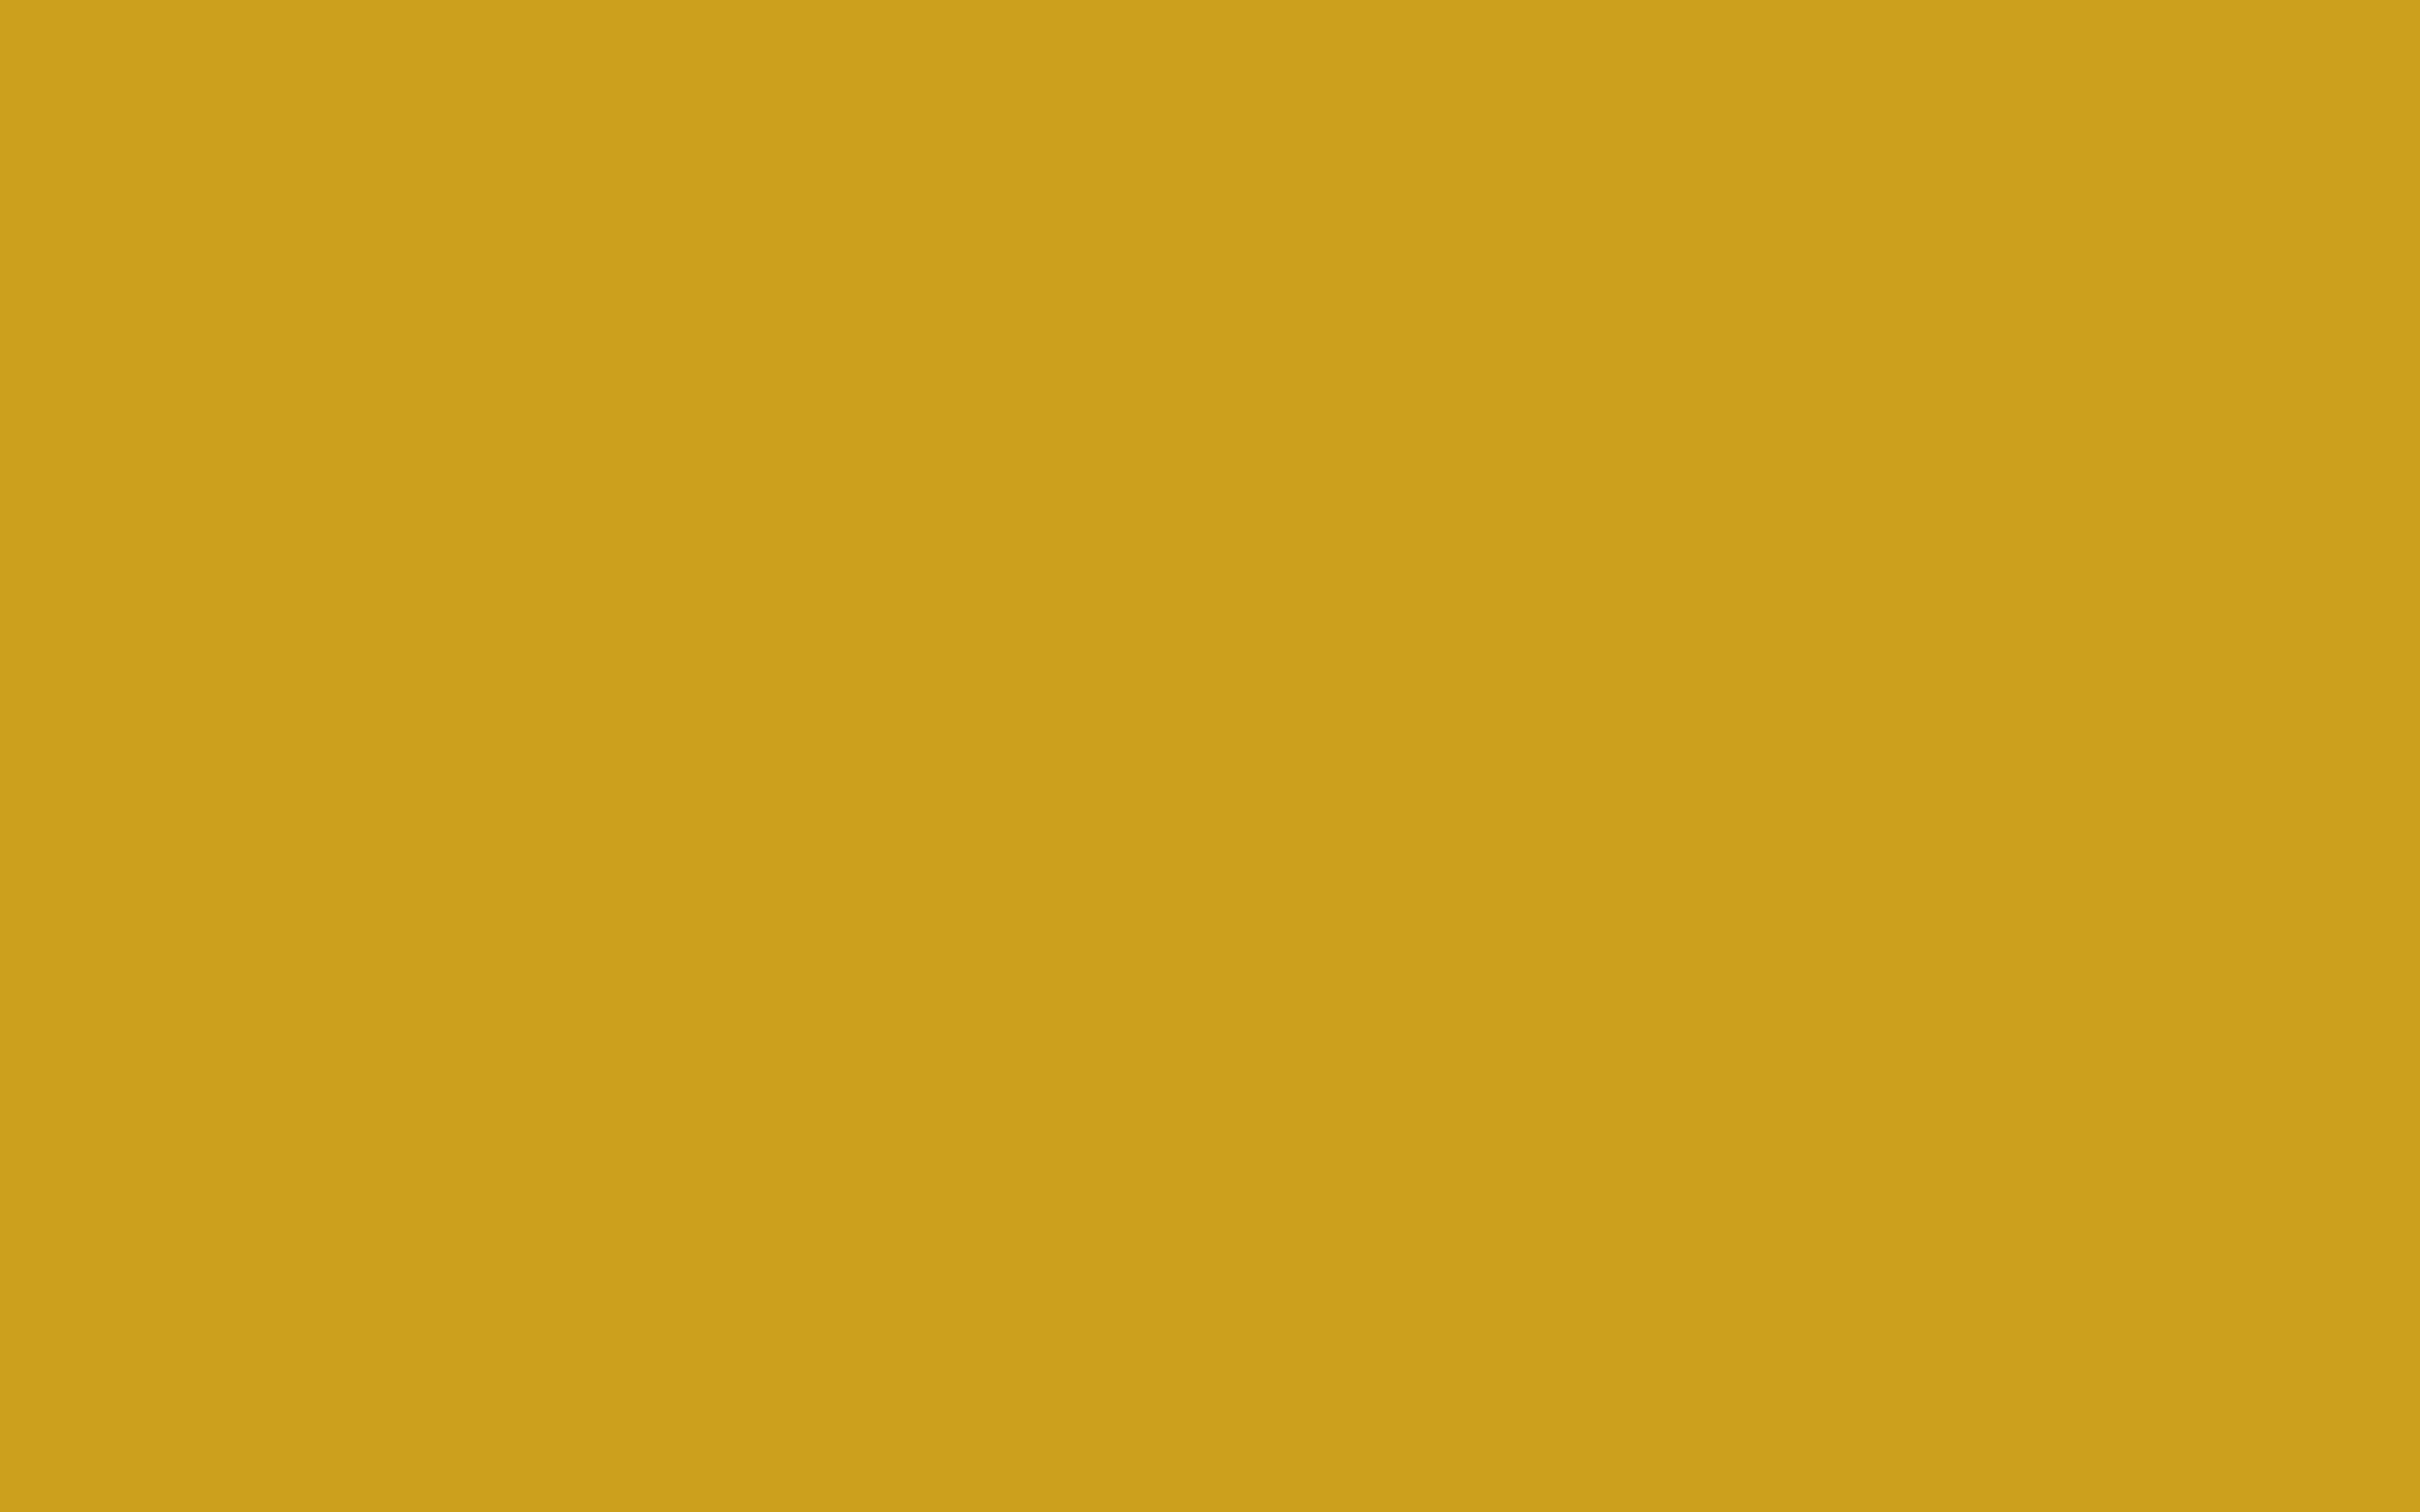 2880x1800 Lemon Curry Solid Color Background